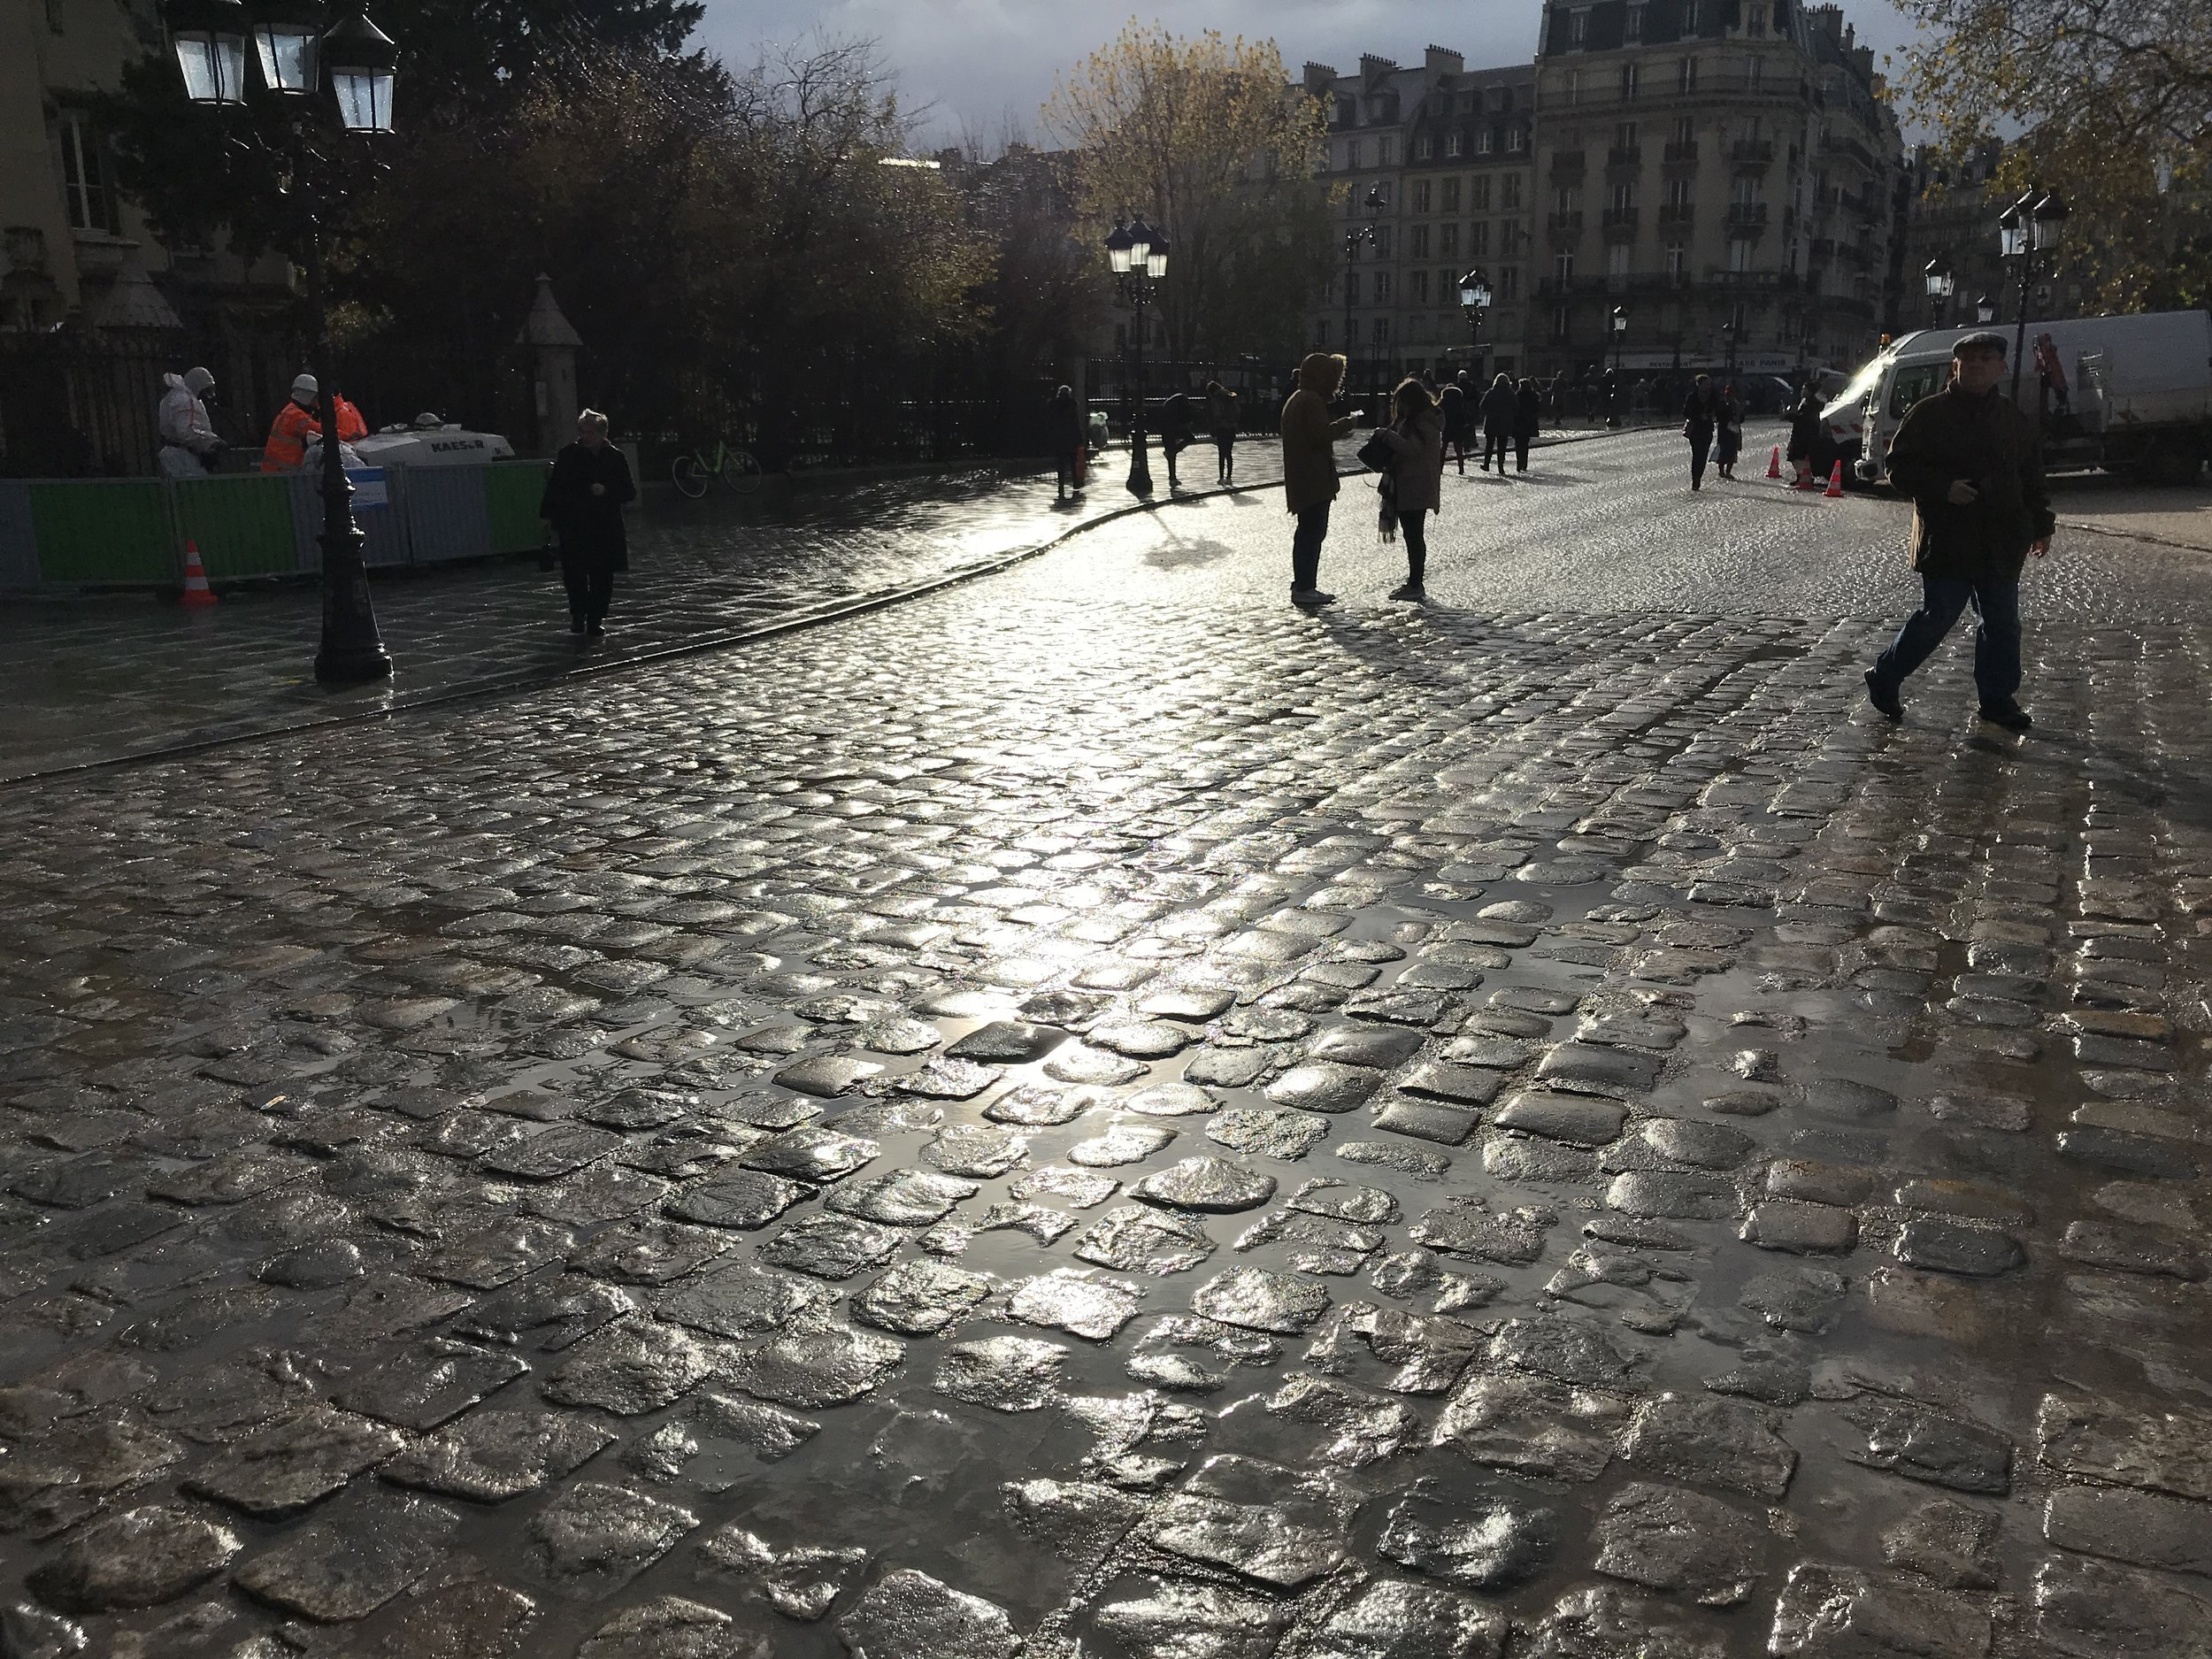 Paris_street_light_28_november.jpg